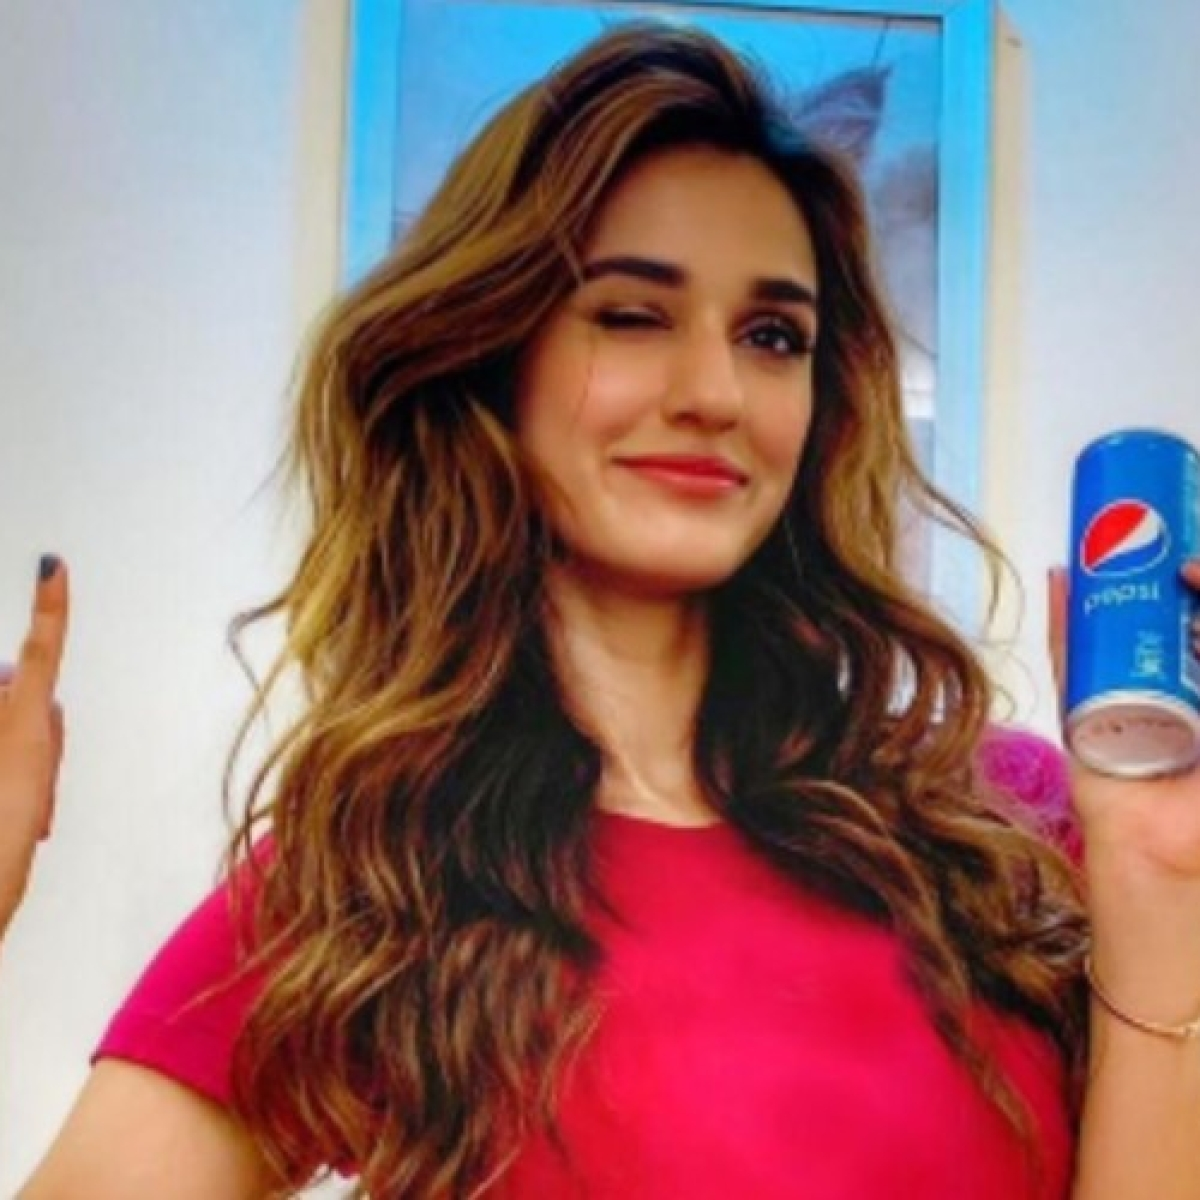 Radhe: Disha Patani wraps the shoot for the first song of the Salman Khan starrer